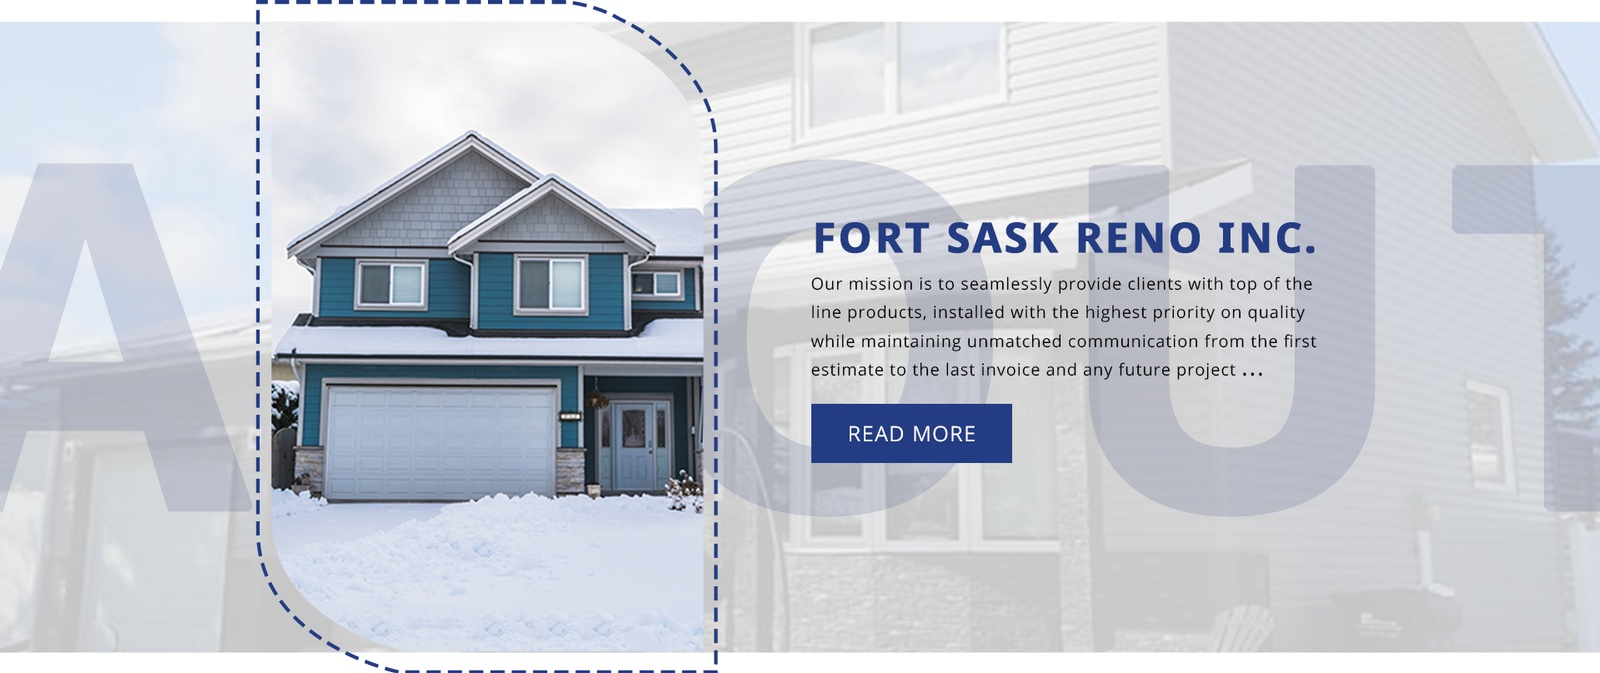 Renovation Services Fort Saskatchewan by Fort Sask Reno Inc.